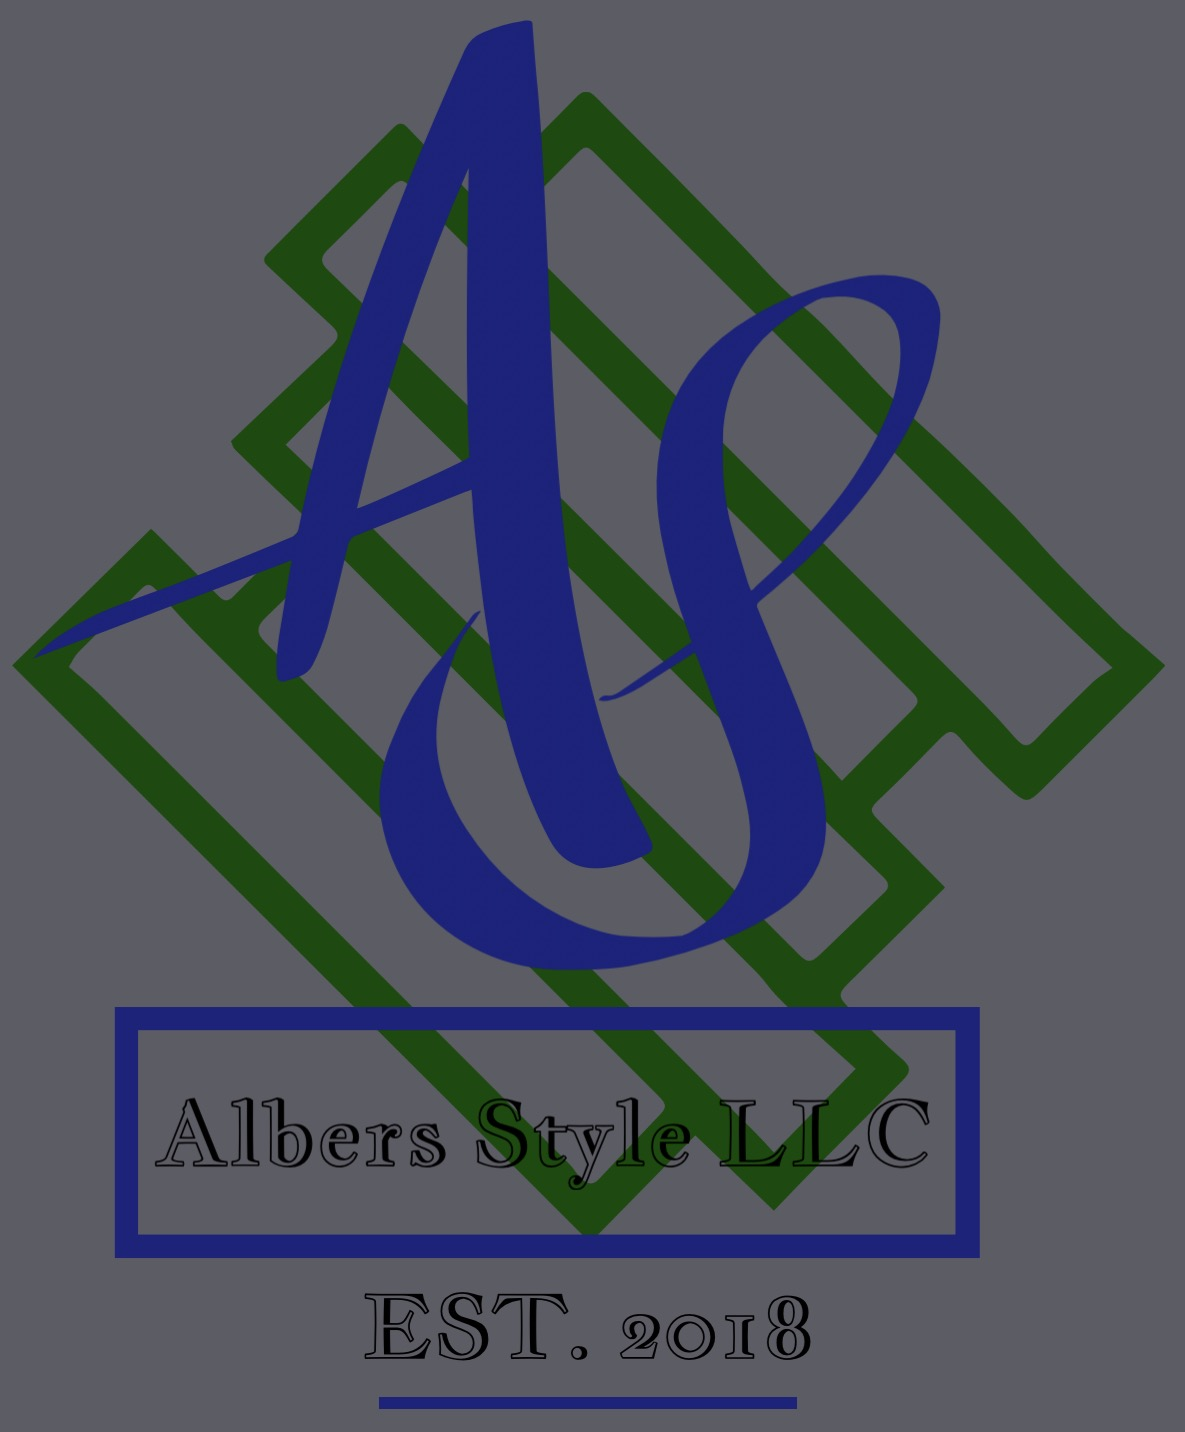 AlbersStyle  image